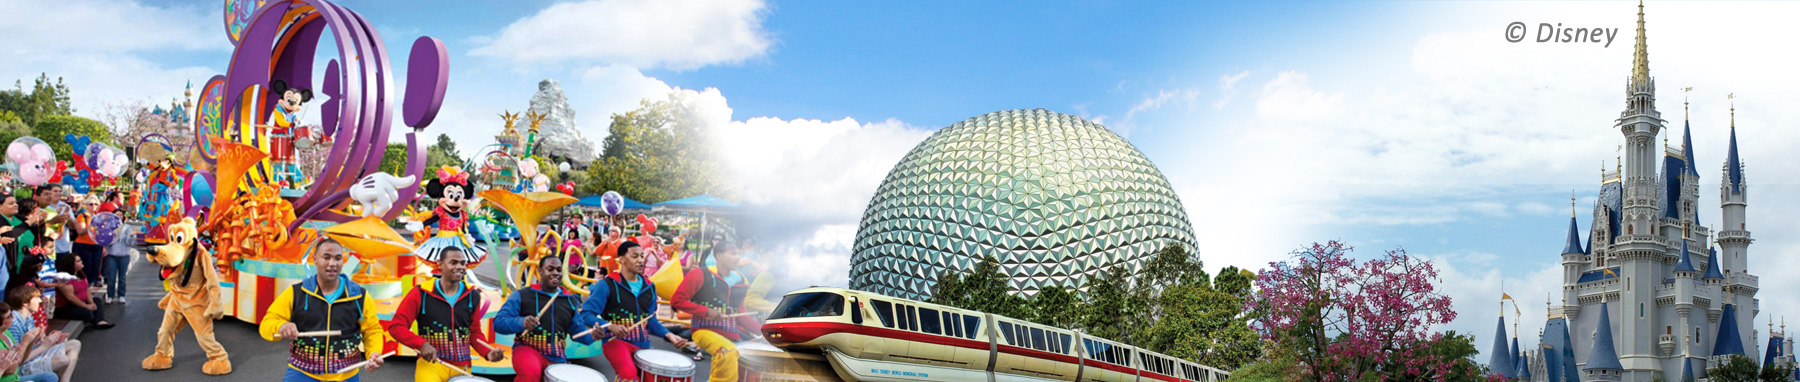 Walt Disney World Orlando Harpers Travel Cheap Holiday Tours Frequent Independent Traveler